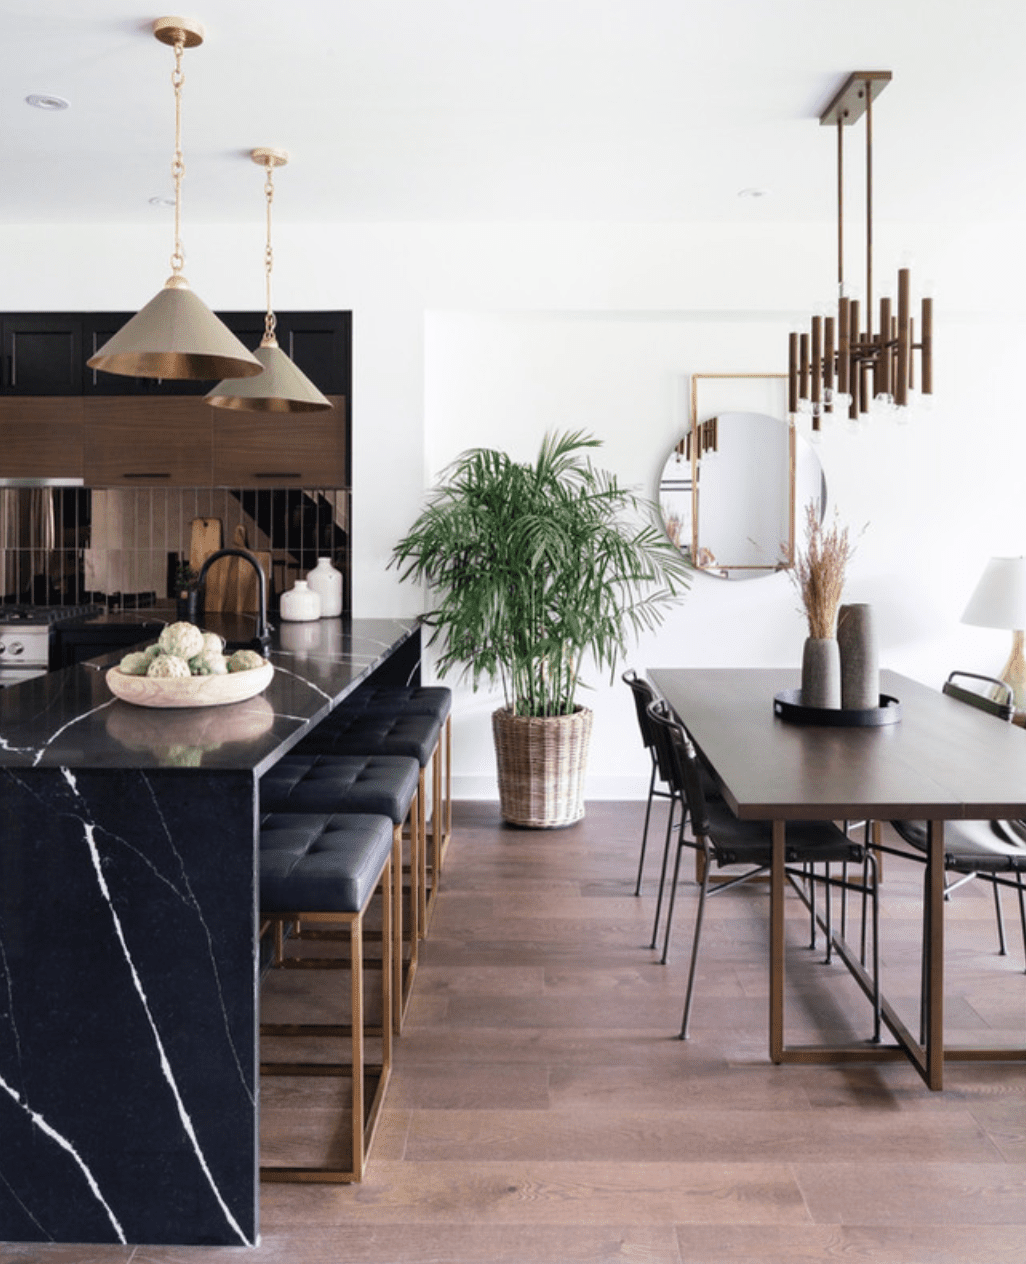 A kitchen with sleek marble countertops and a very shiny gold backsplash